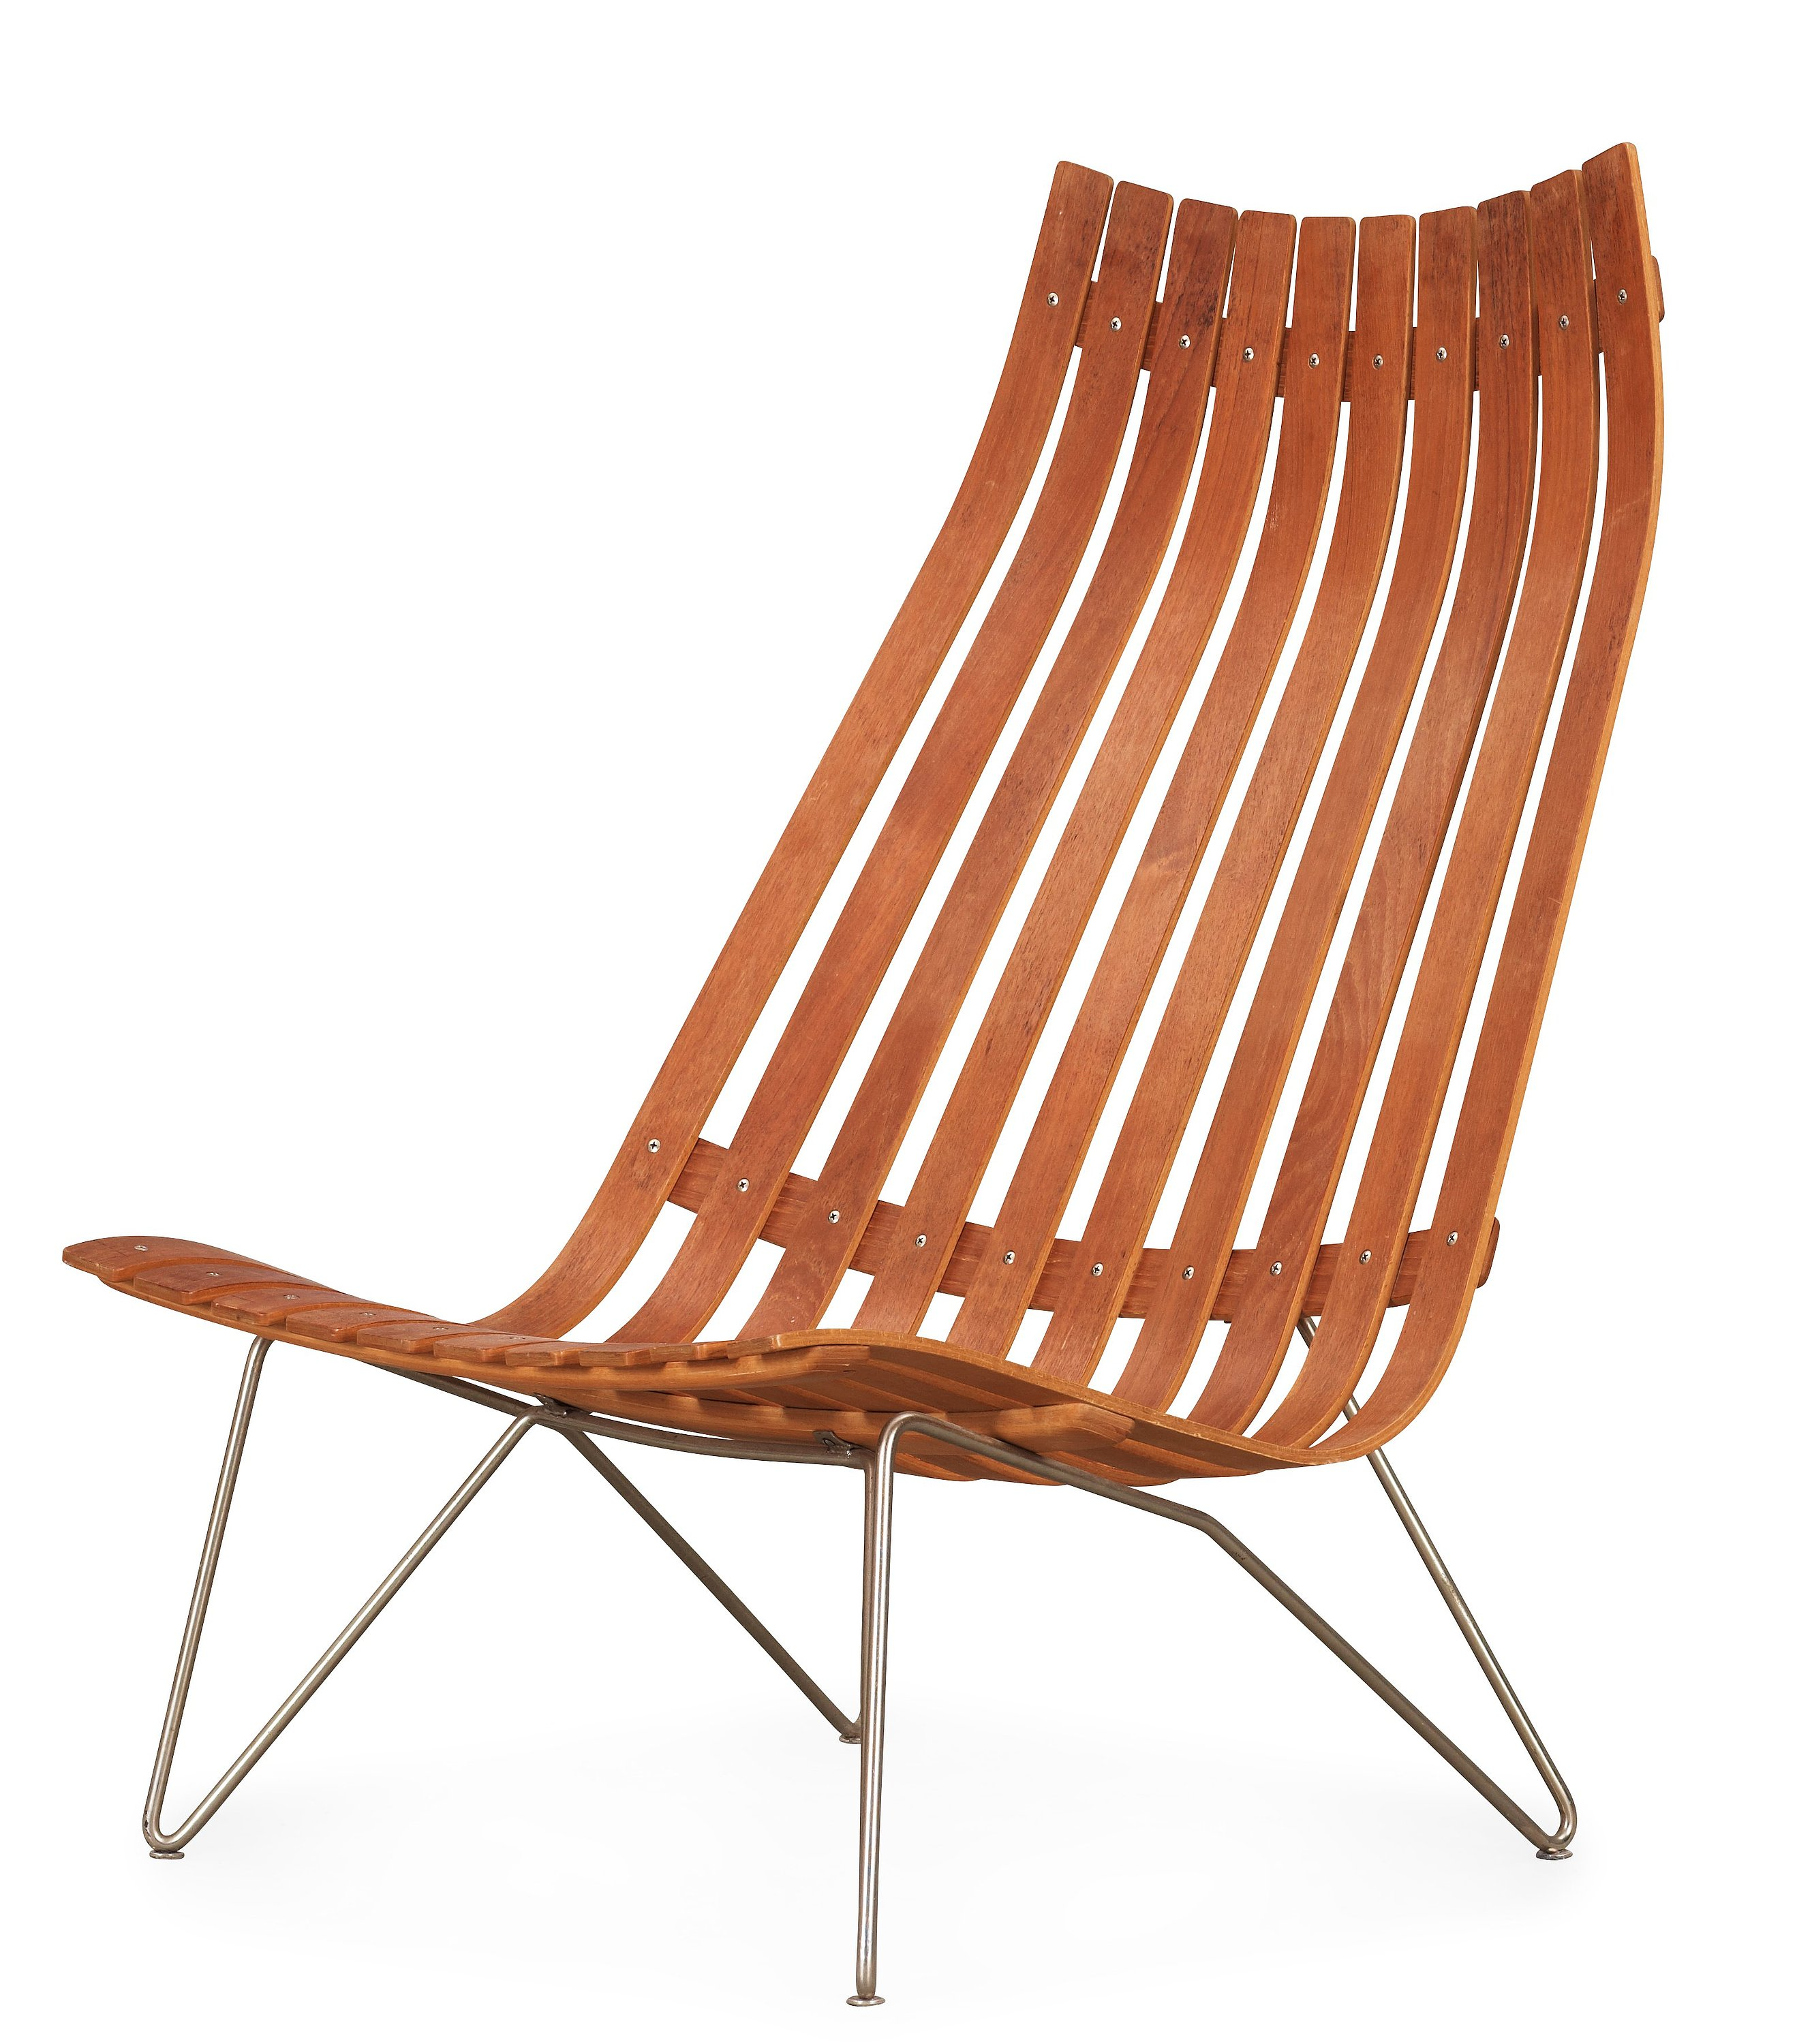 A Hans Brattrud teak and steel Scandia lounge chair, Hove Møbler ...